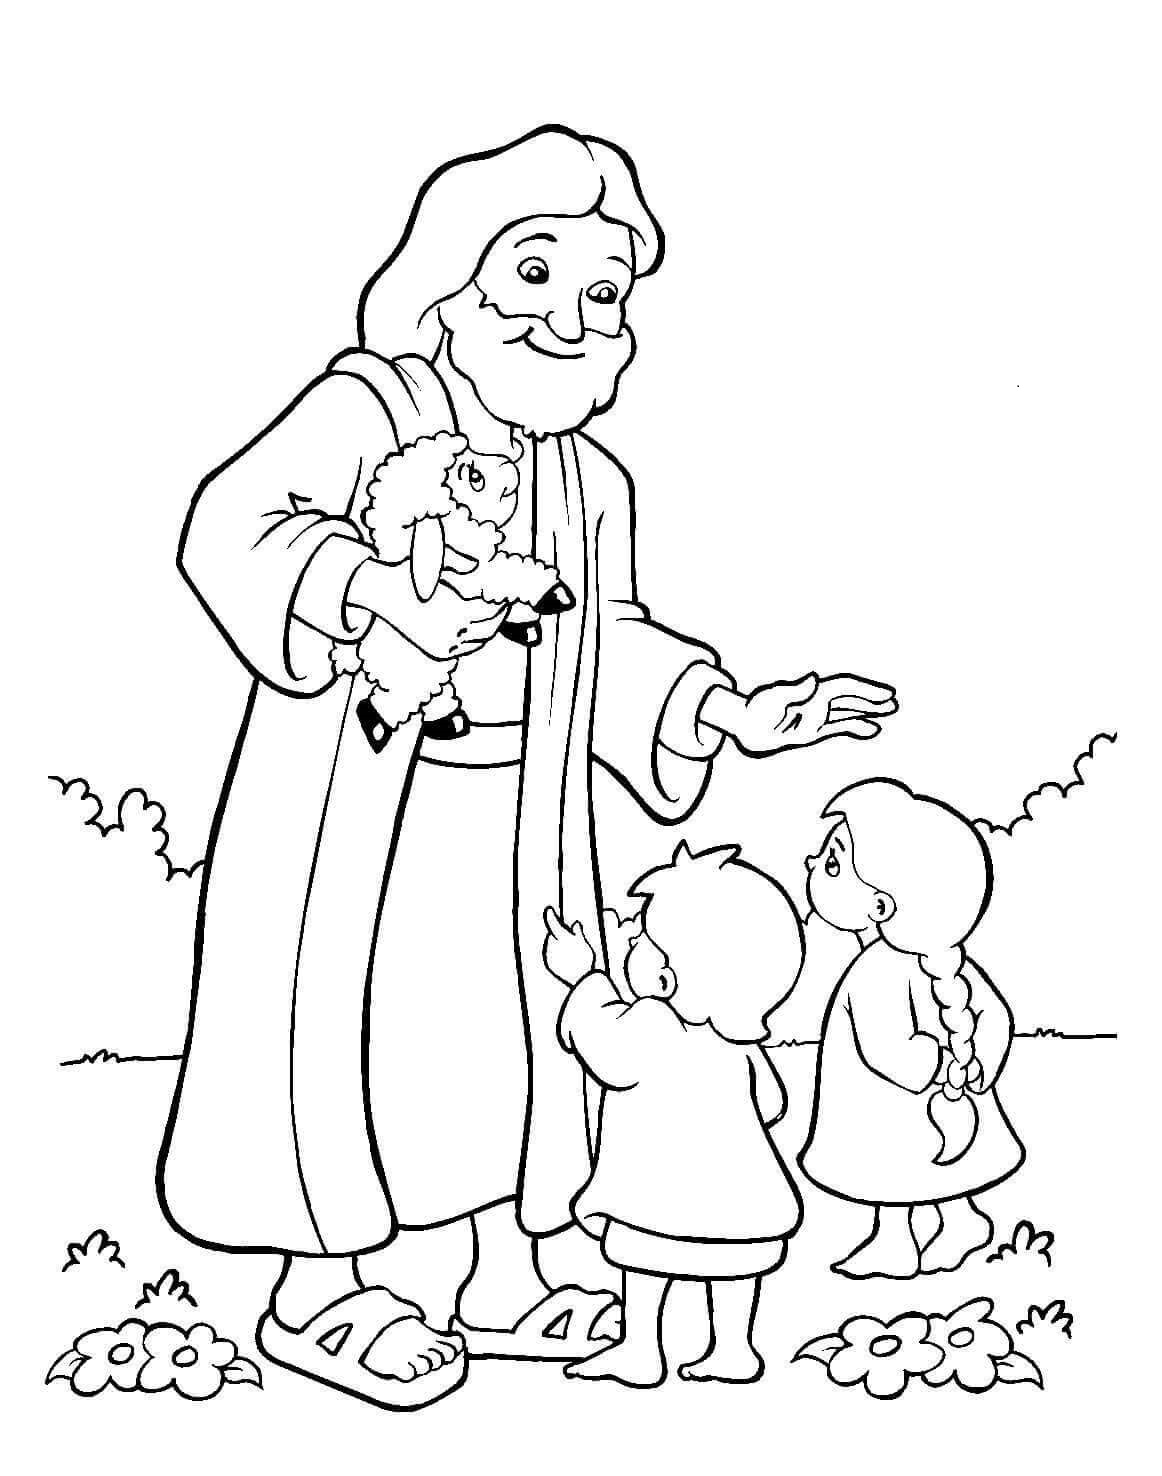 sunday school coloring pages preschool sunday school coloring pages coloring home coloring school pages sunday